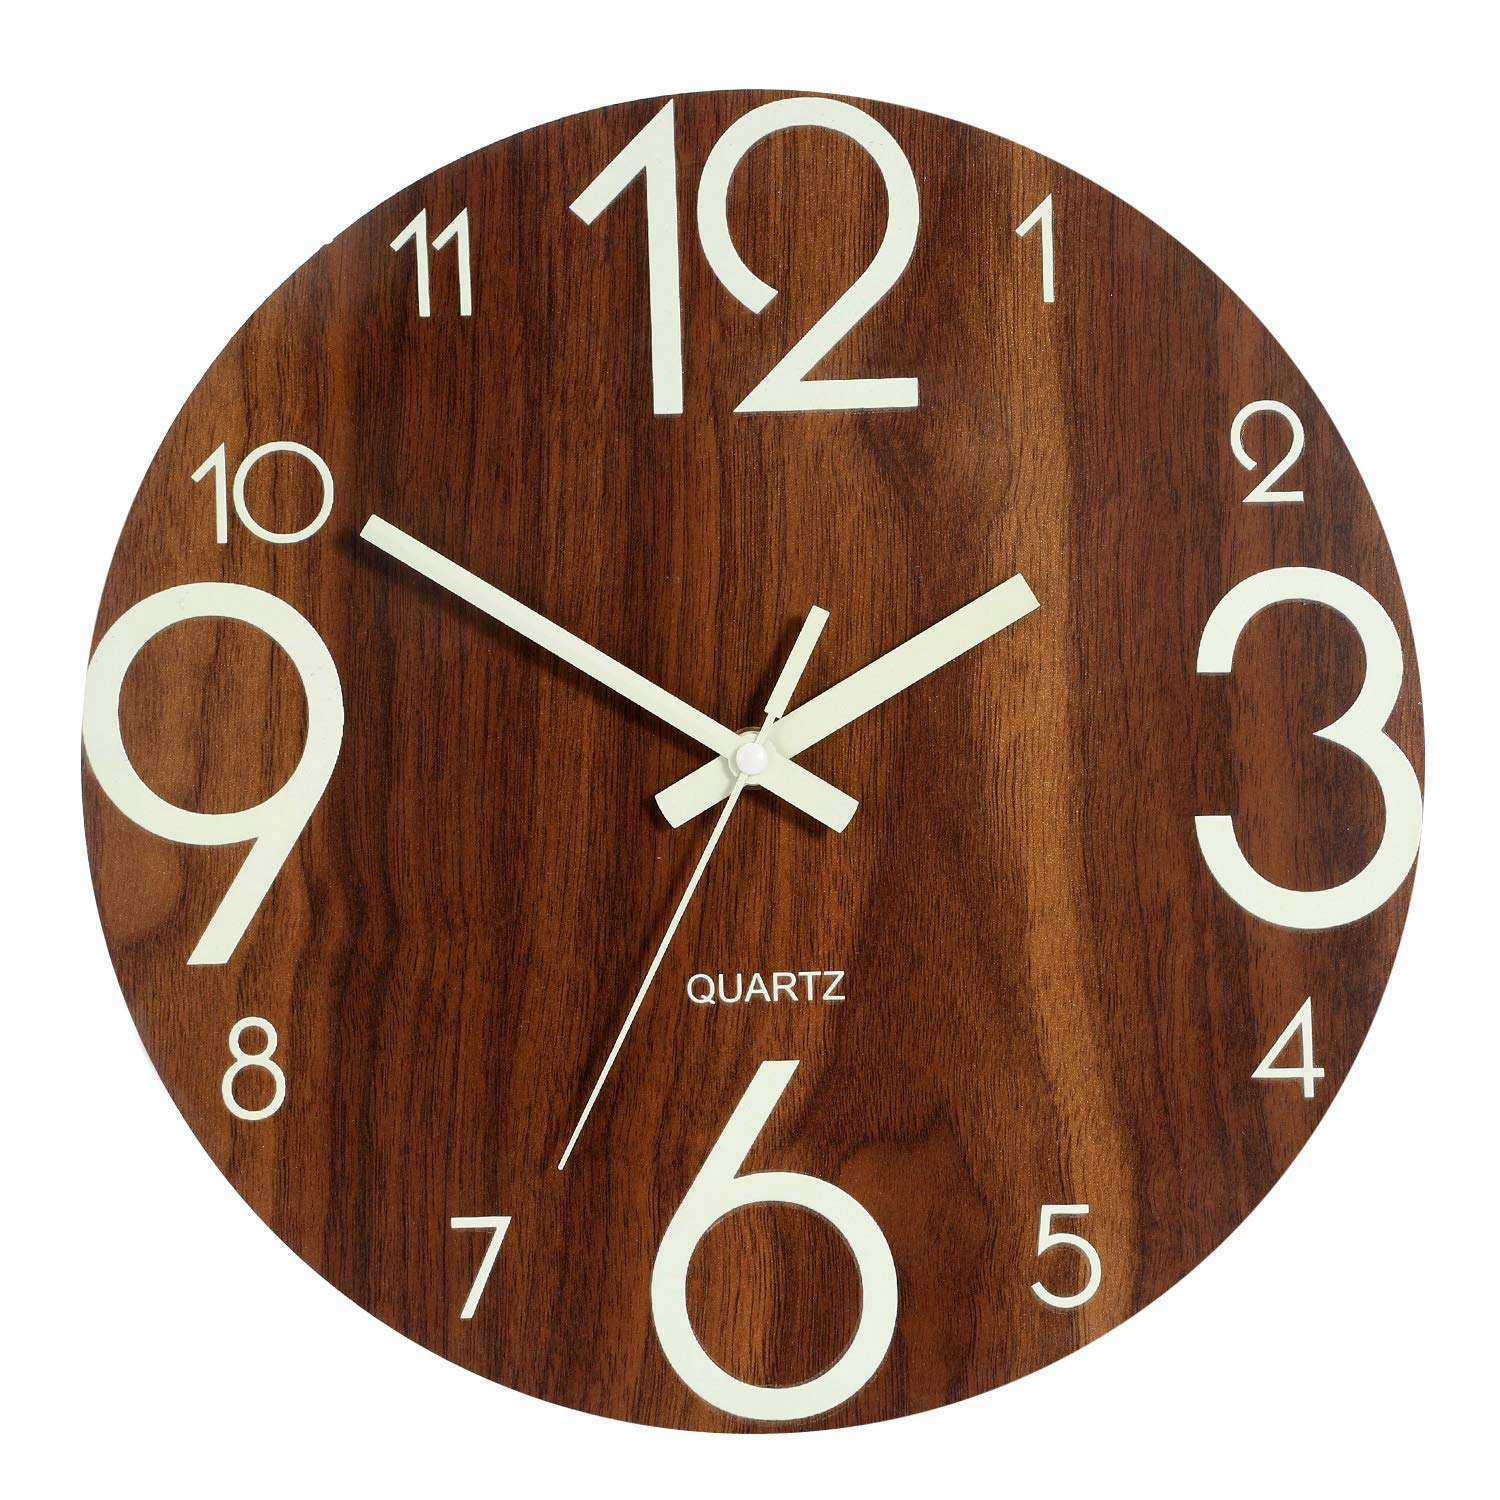 Luminous Wall Clock,12 Inch Wooden Silent Non-Ticking Kitchen Wall Clocks With Night Lights For Indoor/Outdoor Living Room